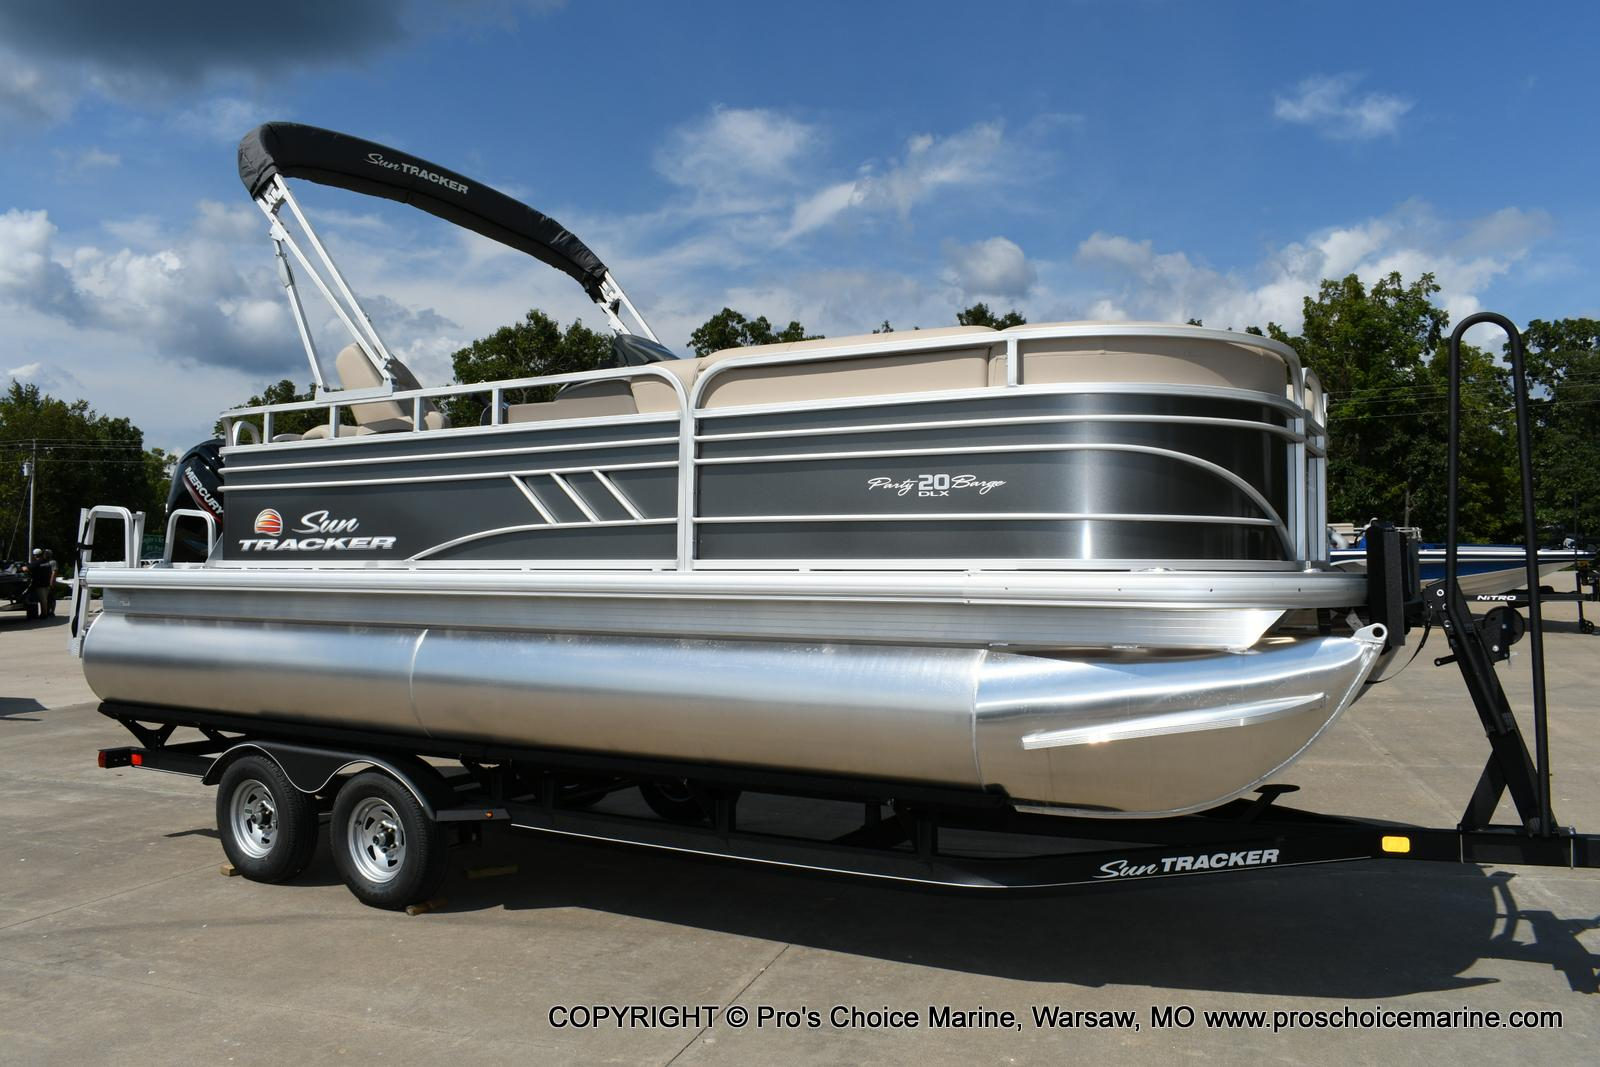 2020 Sun Tracker boat for sale, model of the boat is Party Barge 20 DLX & Image # 42 of 50